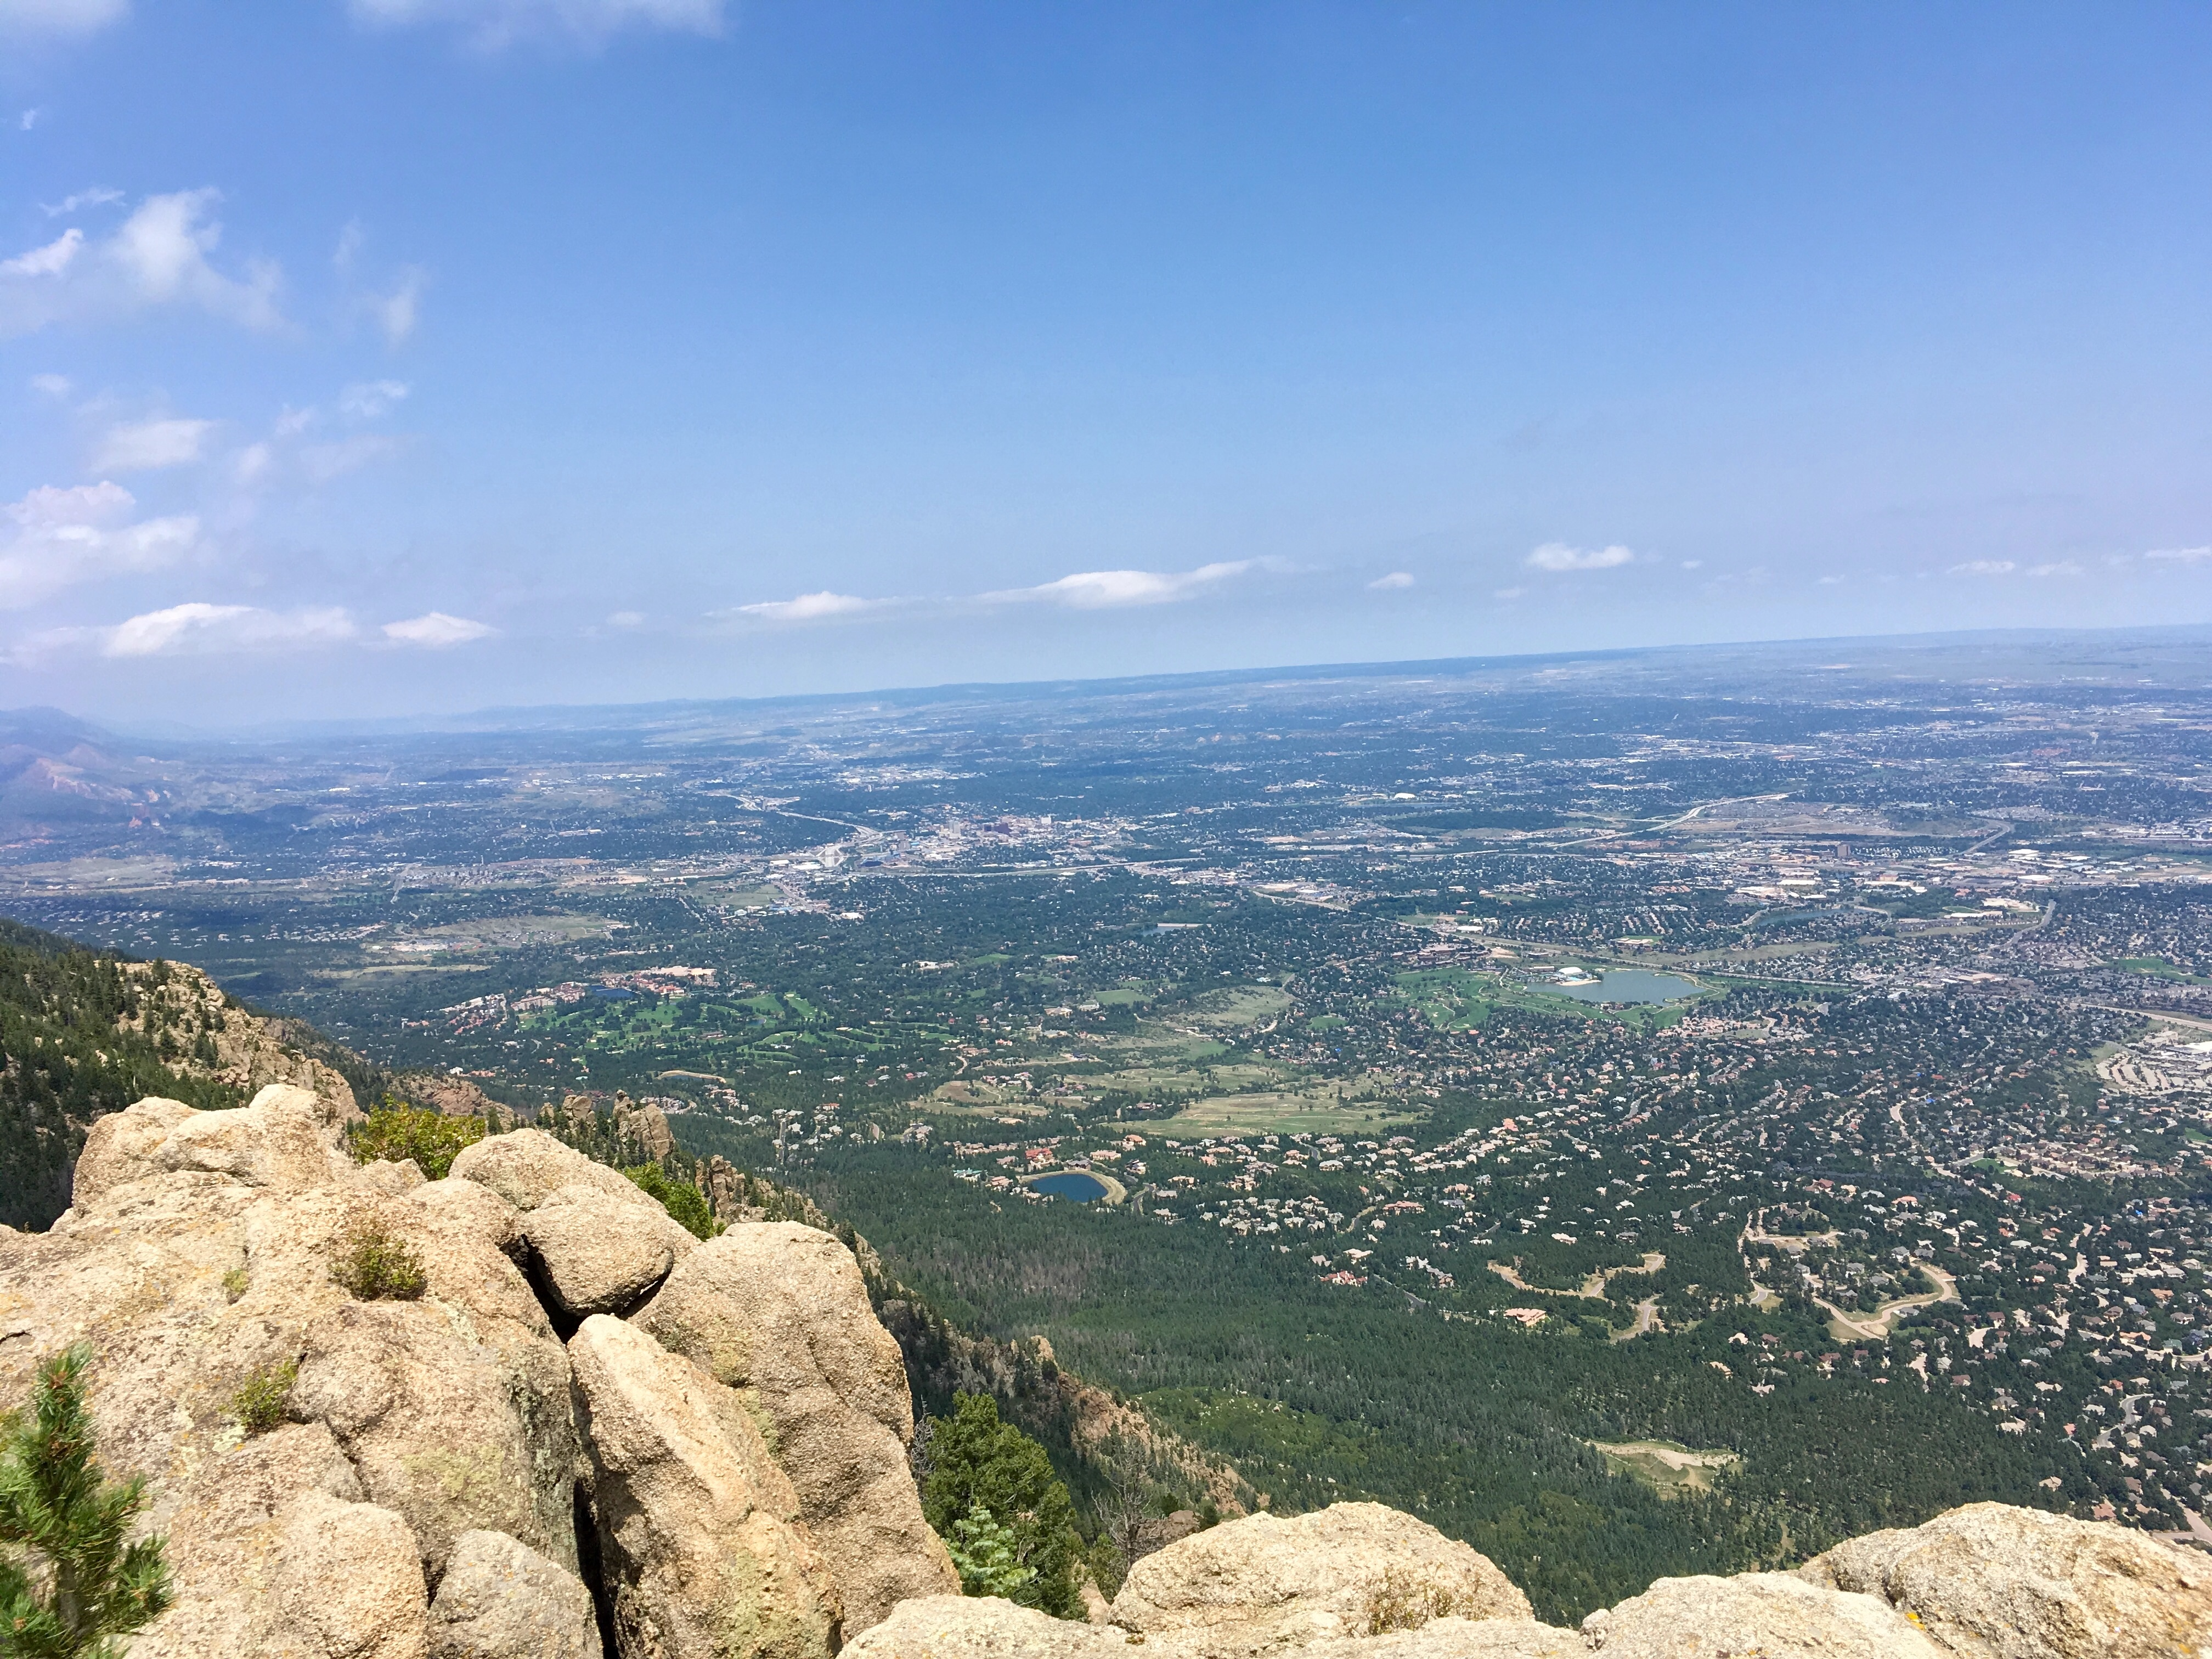 view from Cheyenne Mountain